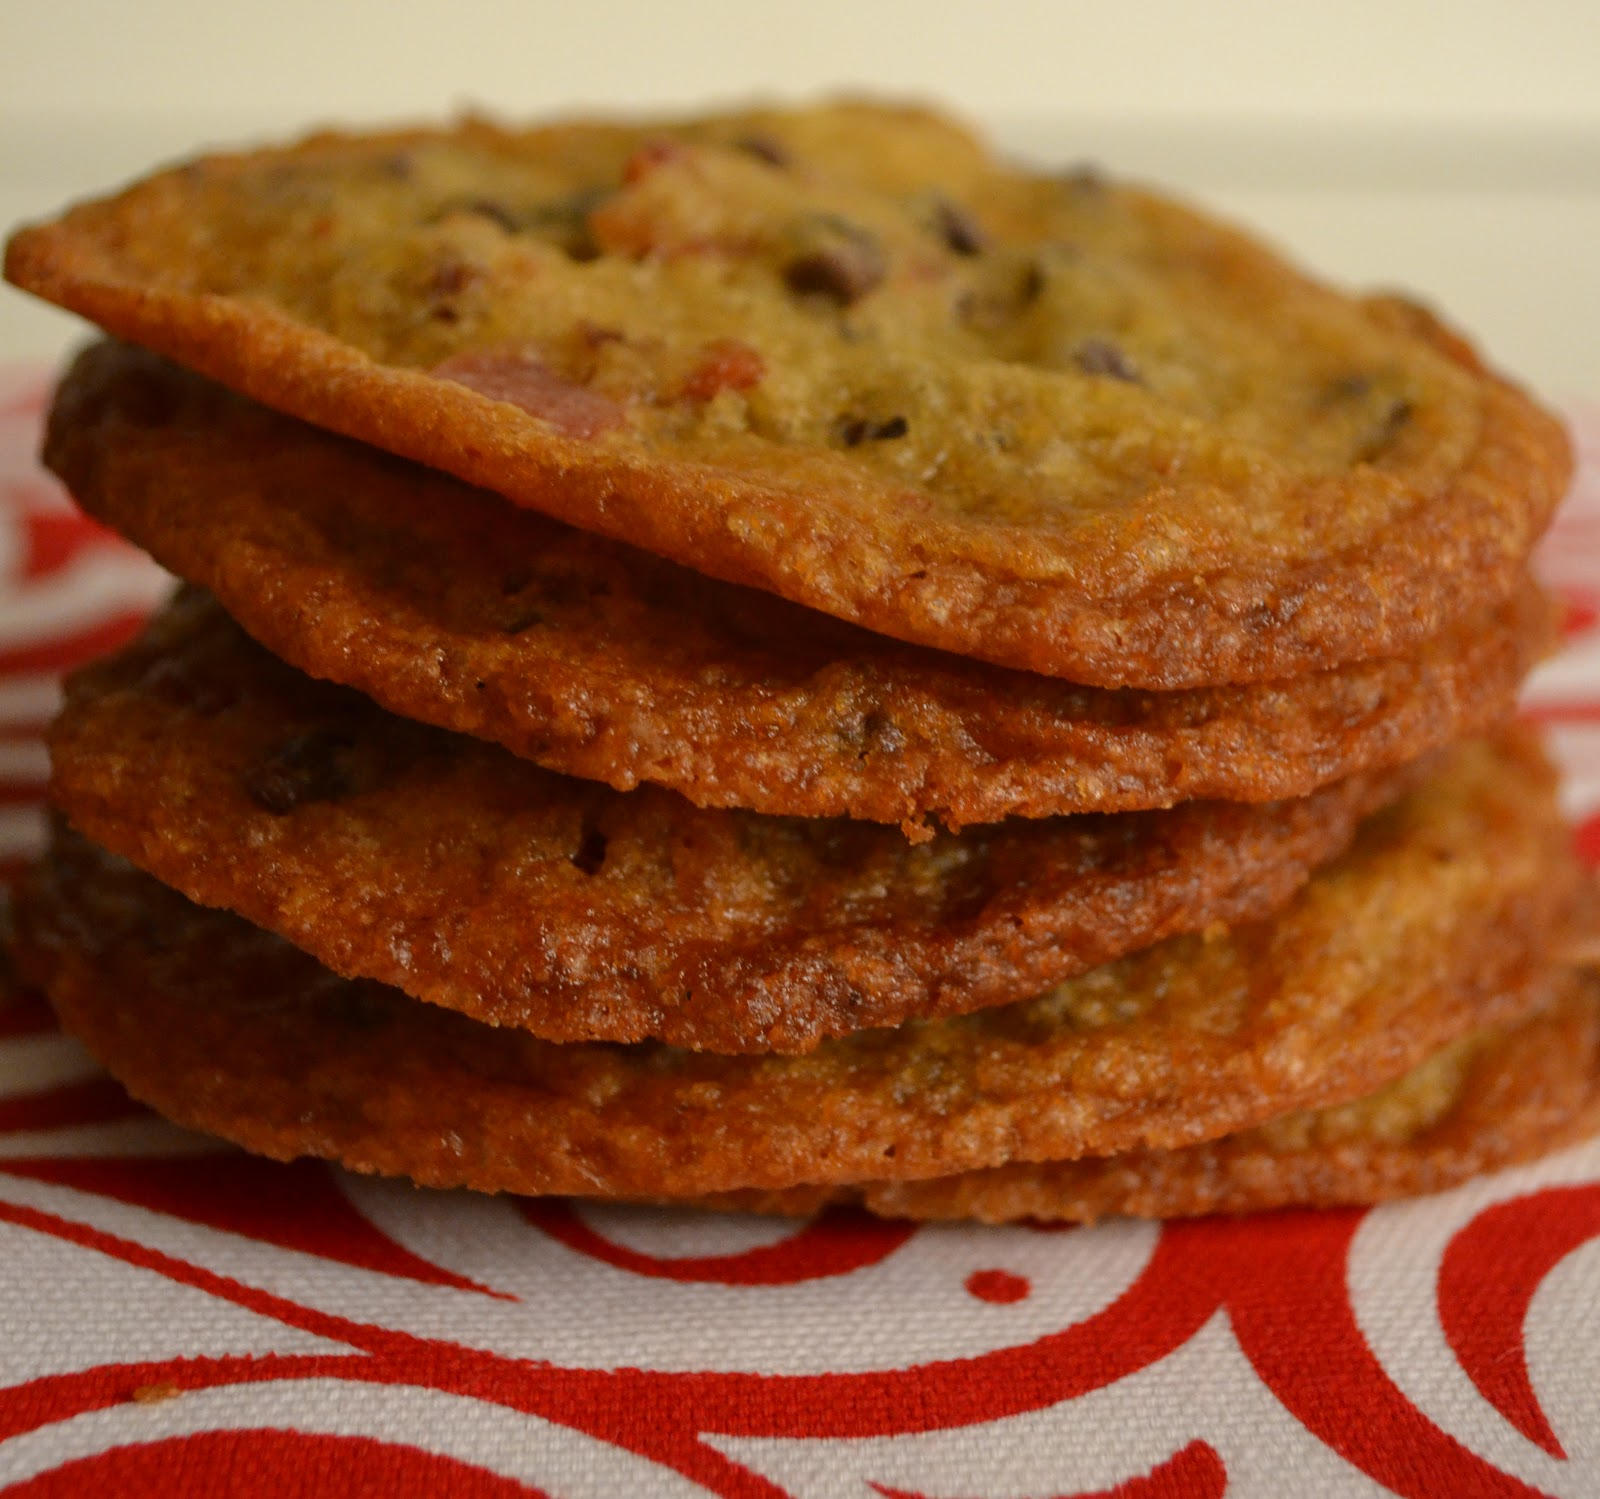 Maple Bacon Chocolate Chip Cookies